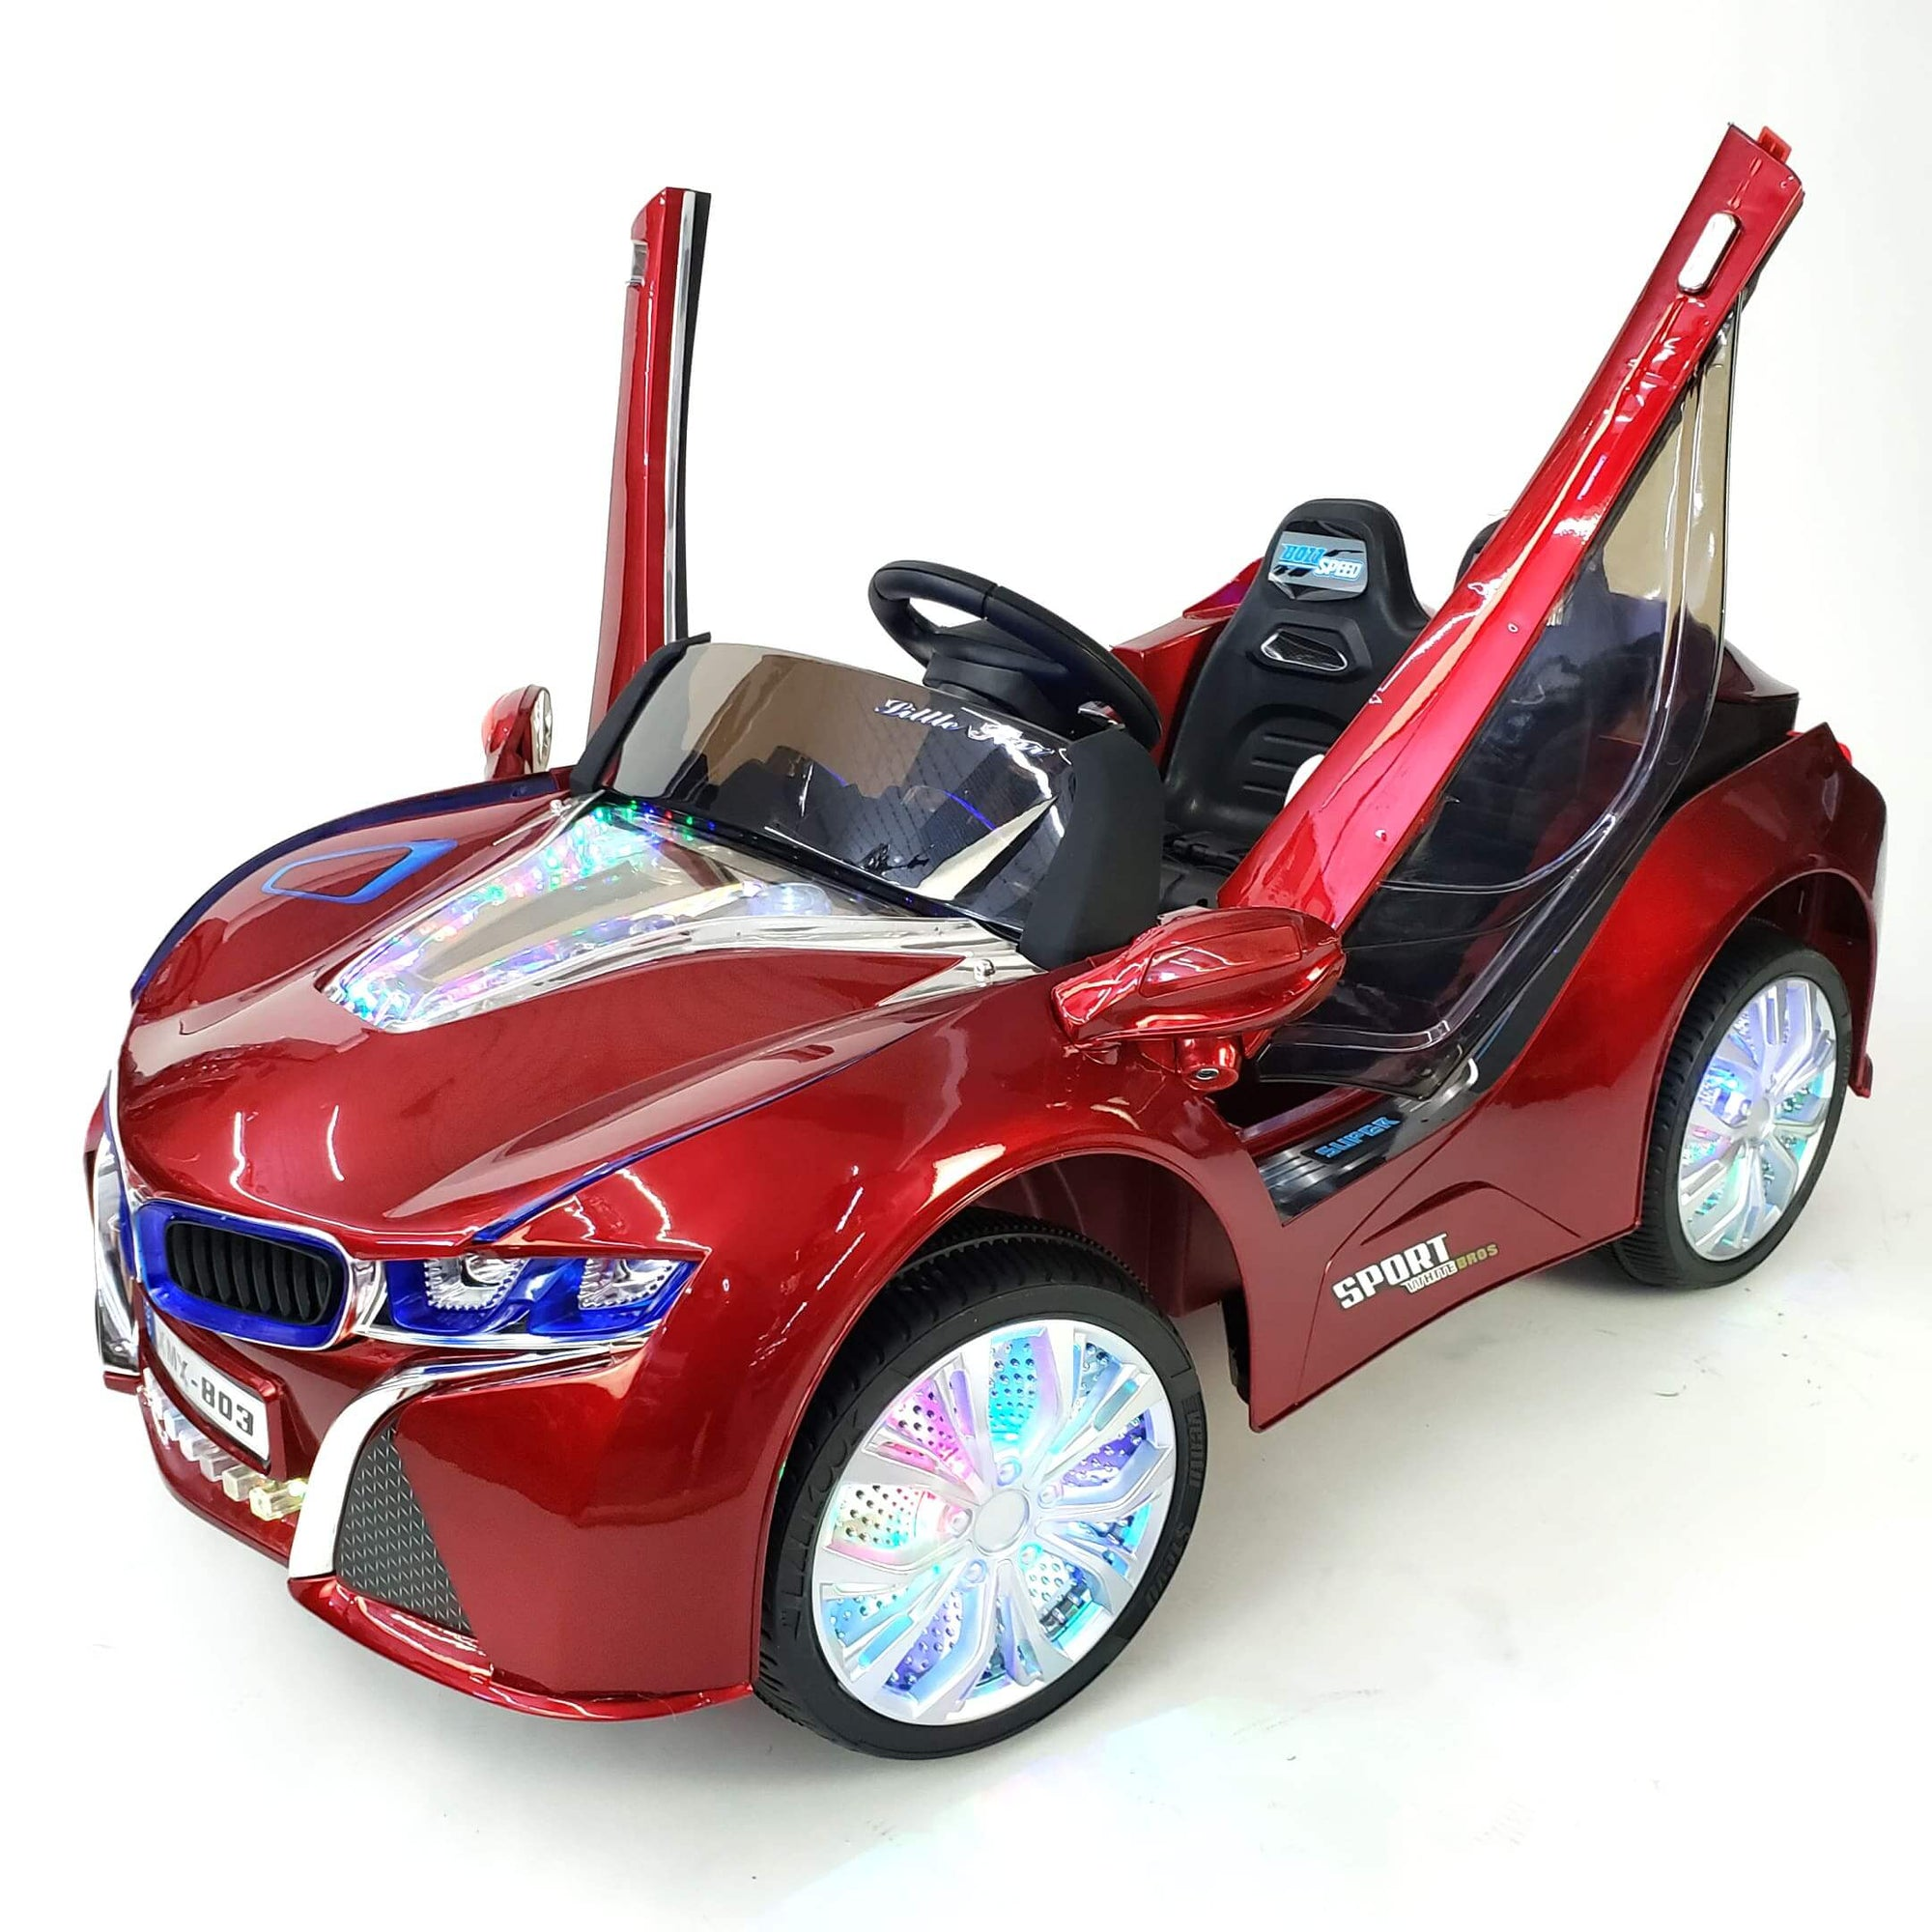 BMW i8 Inspired 1-Seater 12v Kids Ride-On Car in Red - FREE SHIPPING